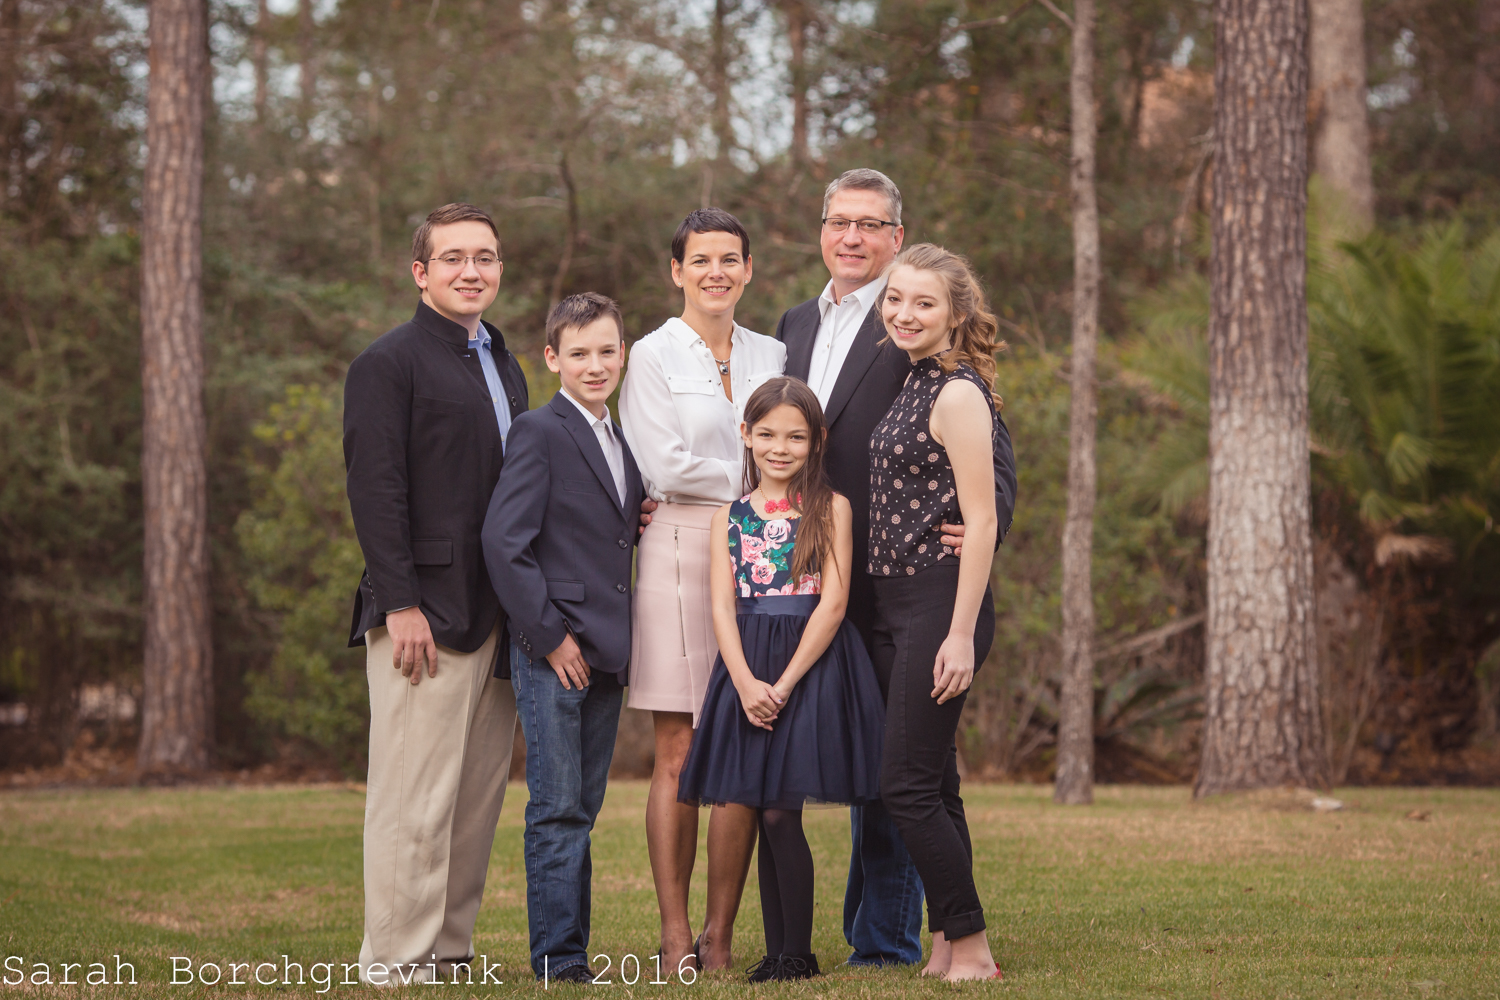 Cypress Tomball and The Woodlands Family Photographer | Outdoor and Natural Light | Sarah Borchgrevink  sc 1 st  Sarah Borchgrevink & Cypress Tomball and The Woodlands Family Photographer | Outdoor ... azcodes.com